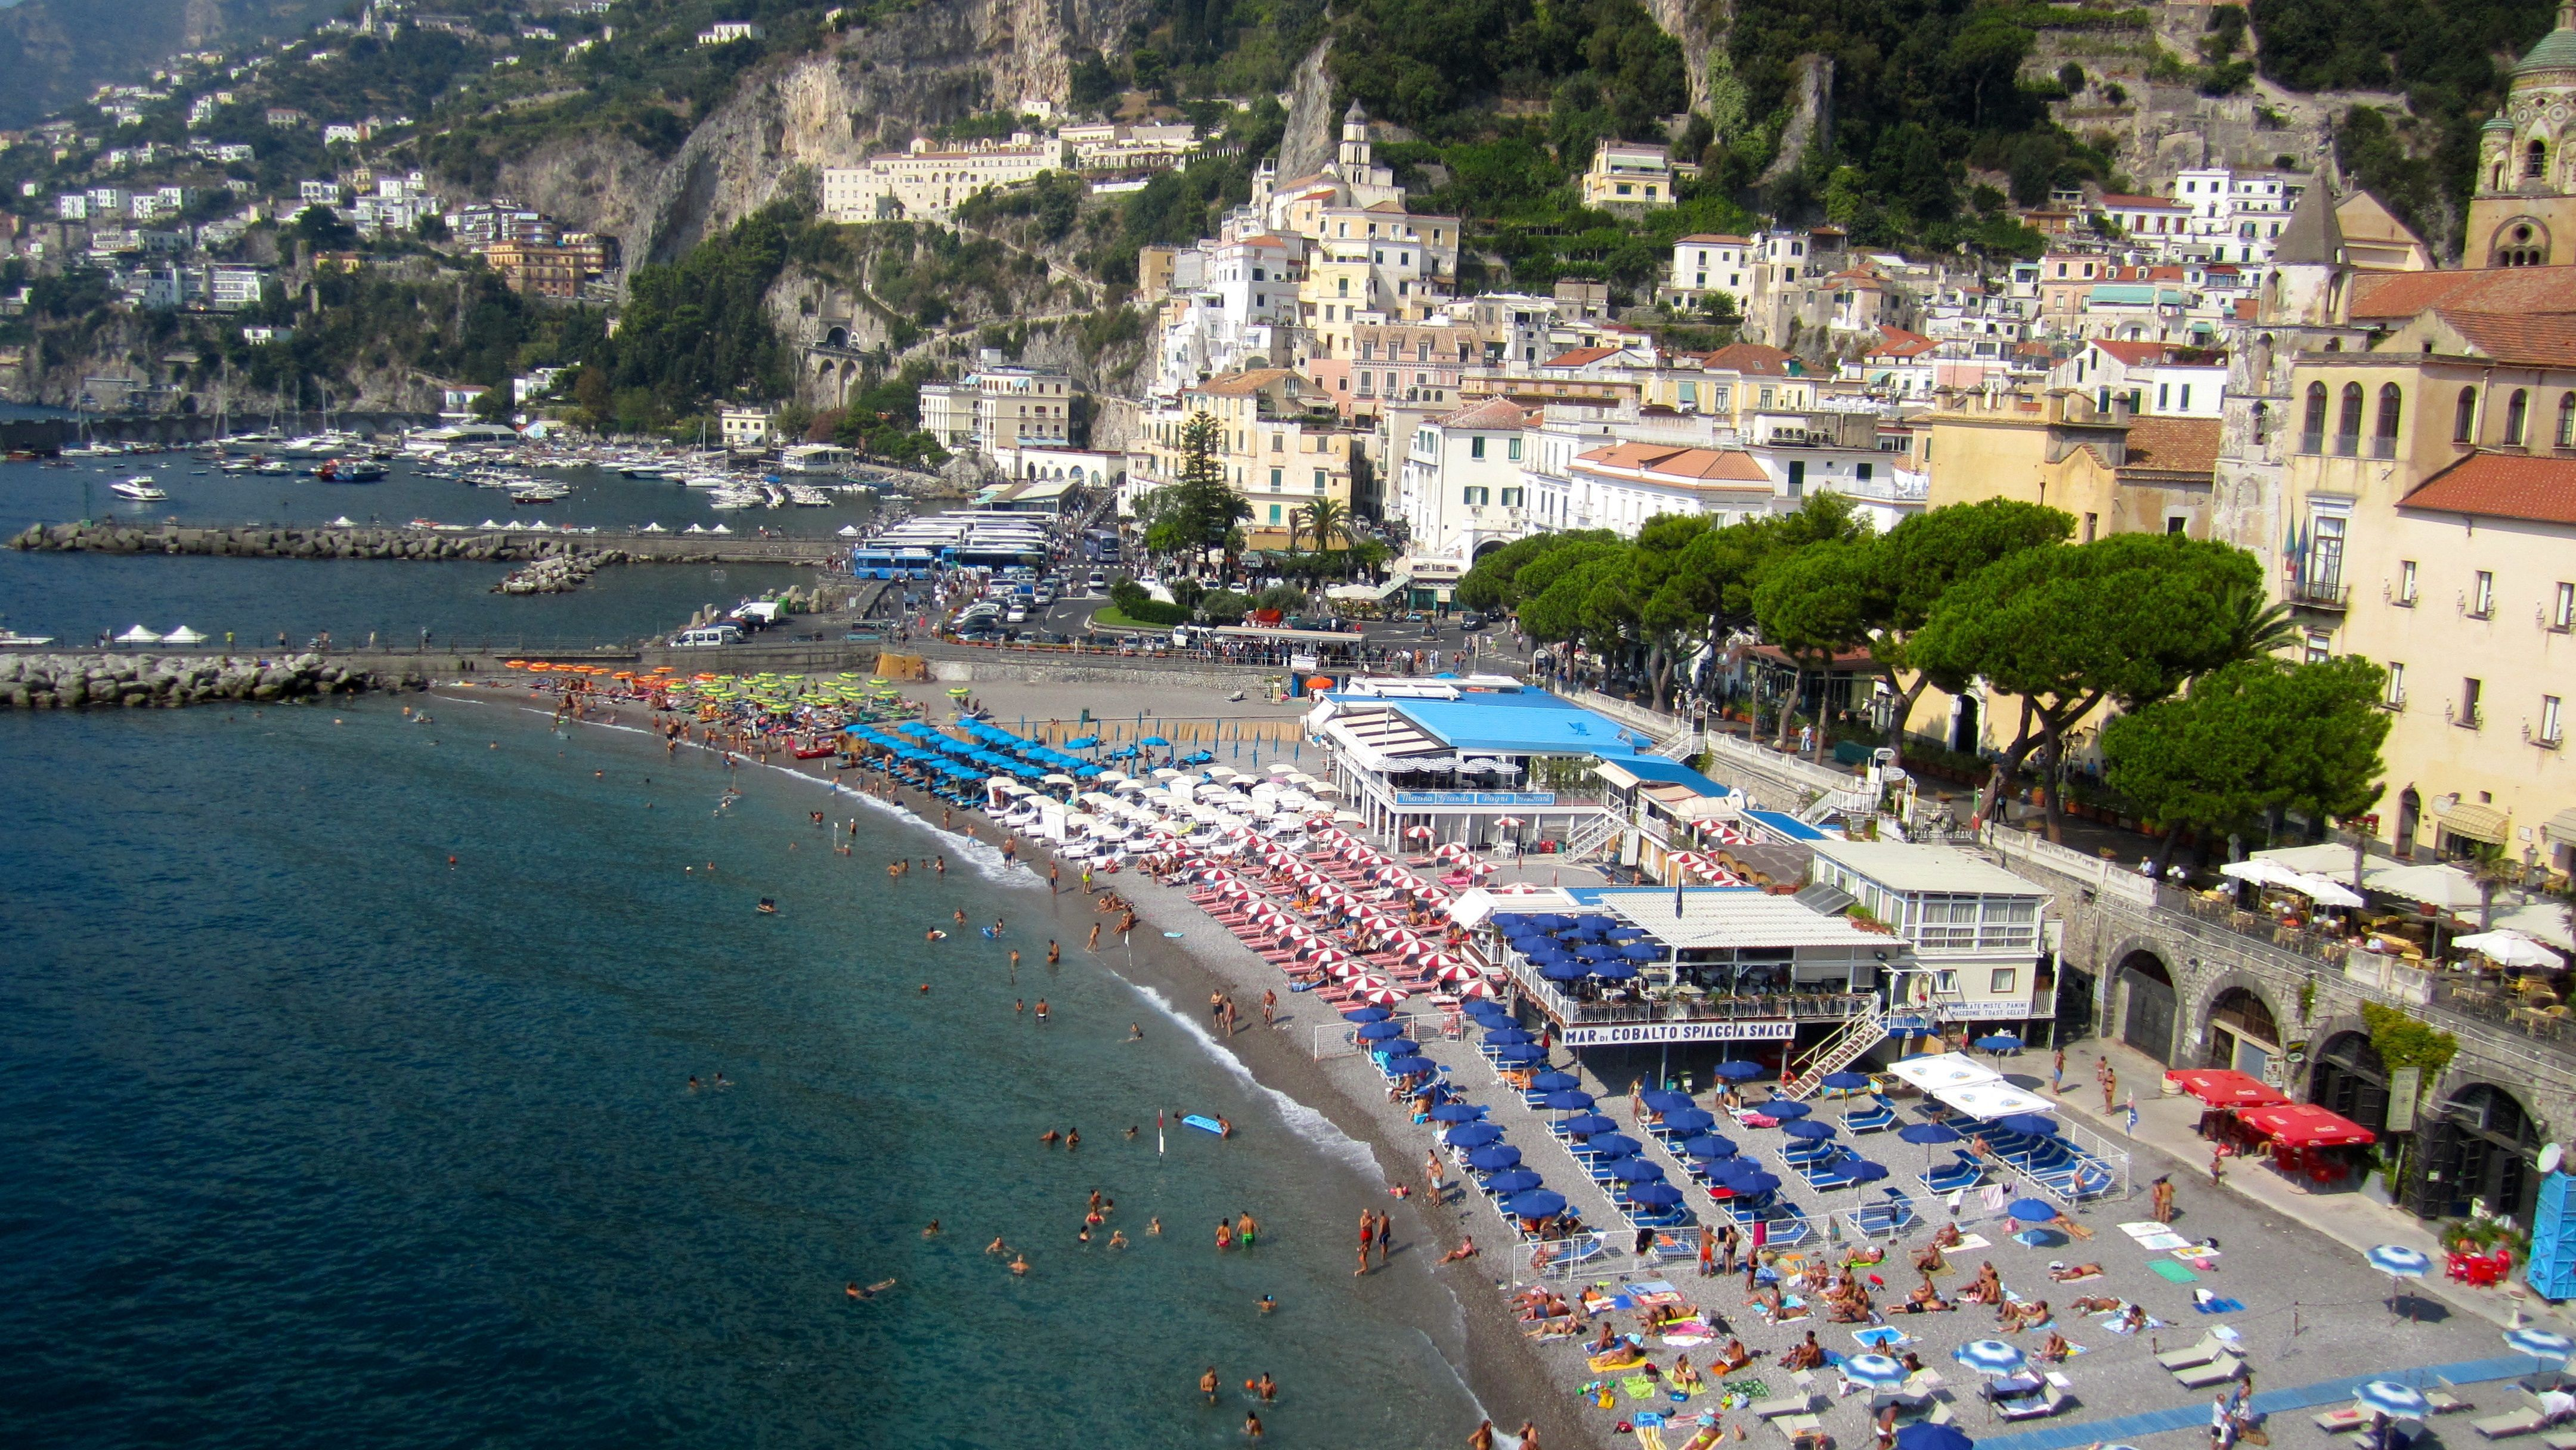 Amalfi - photo wallpapers, pictures from Amalfi